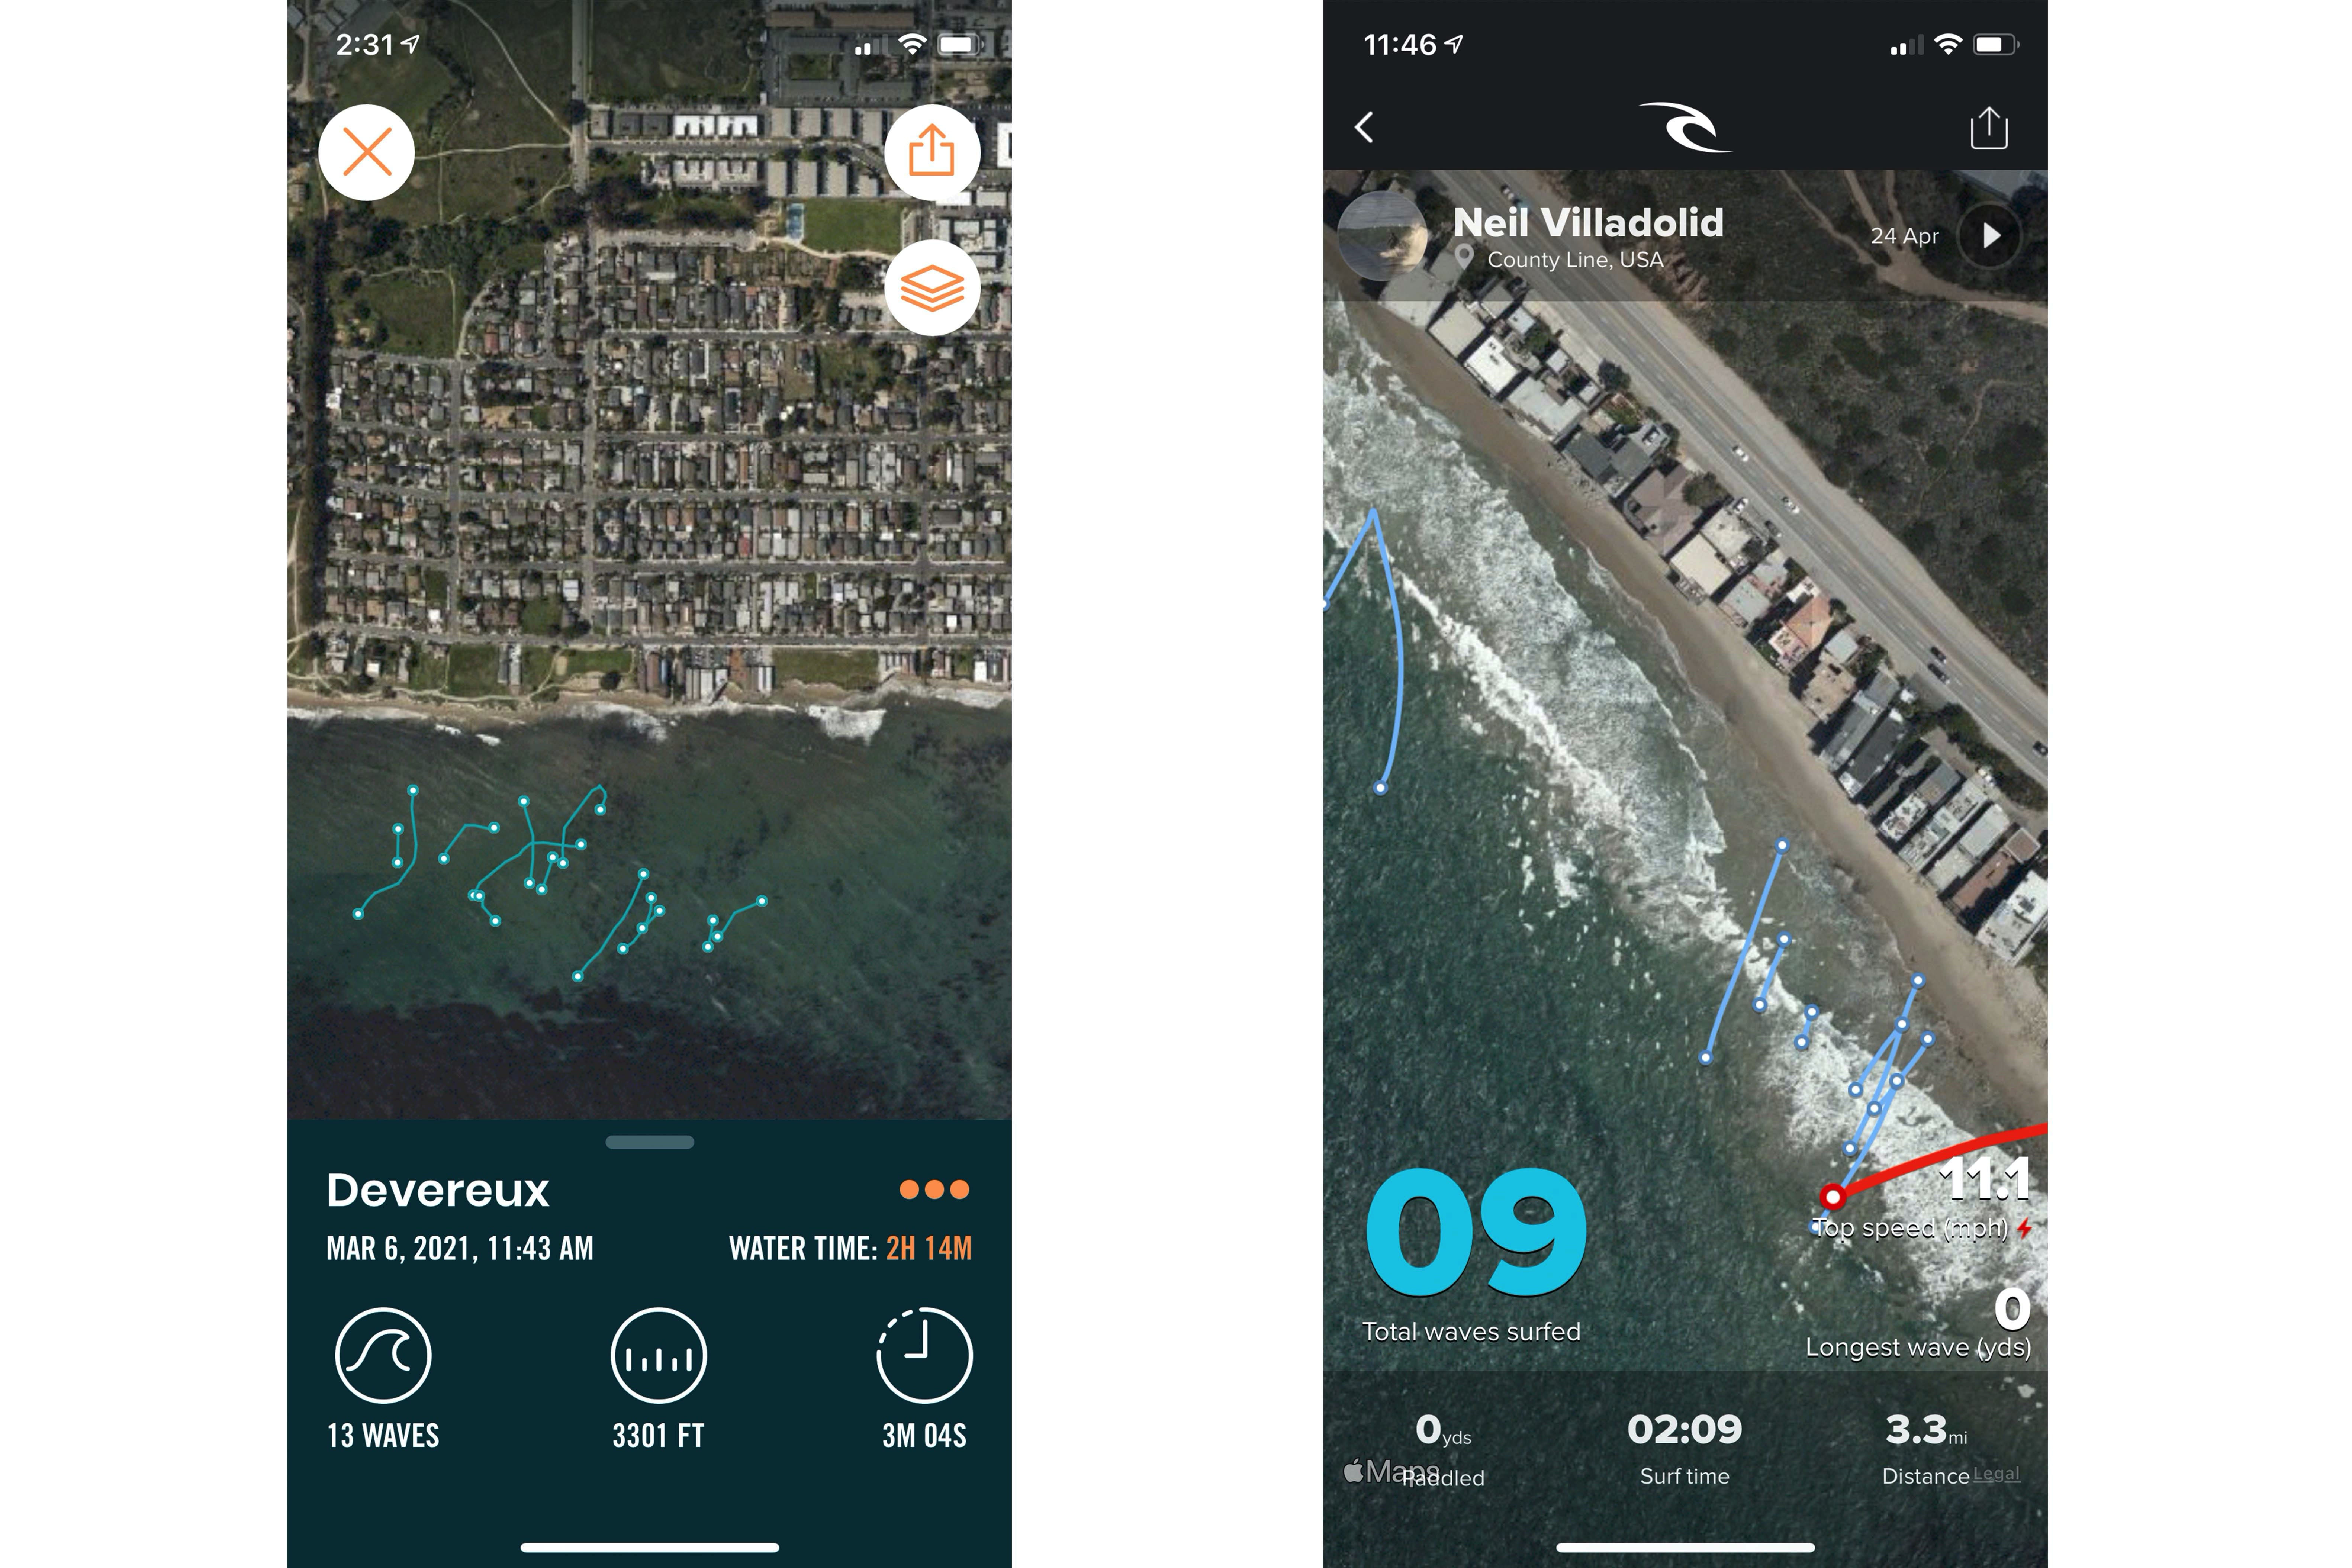 Dawn Patrol and Rip Curl app on an iPhone